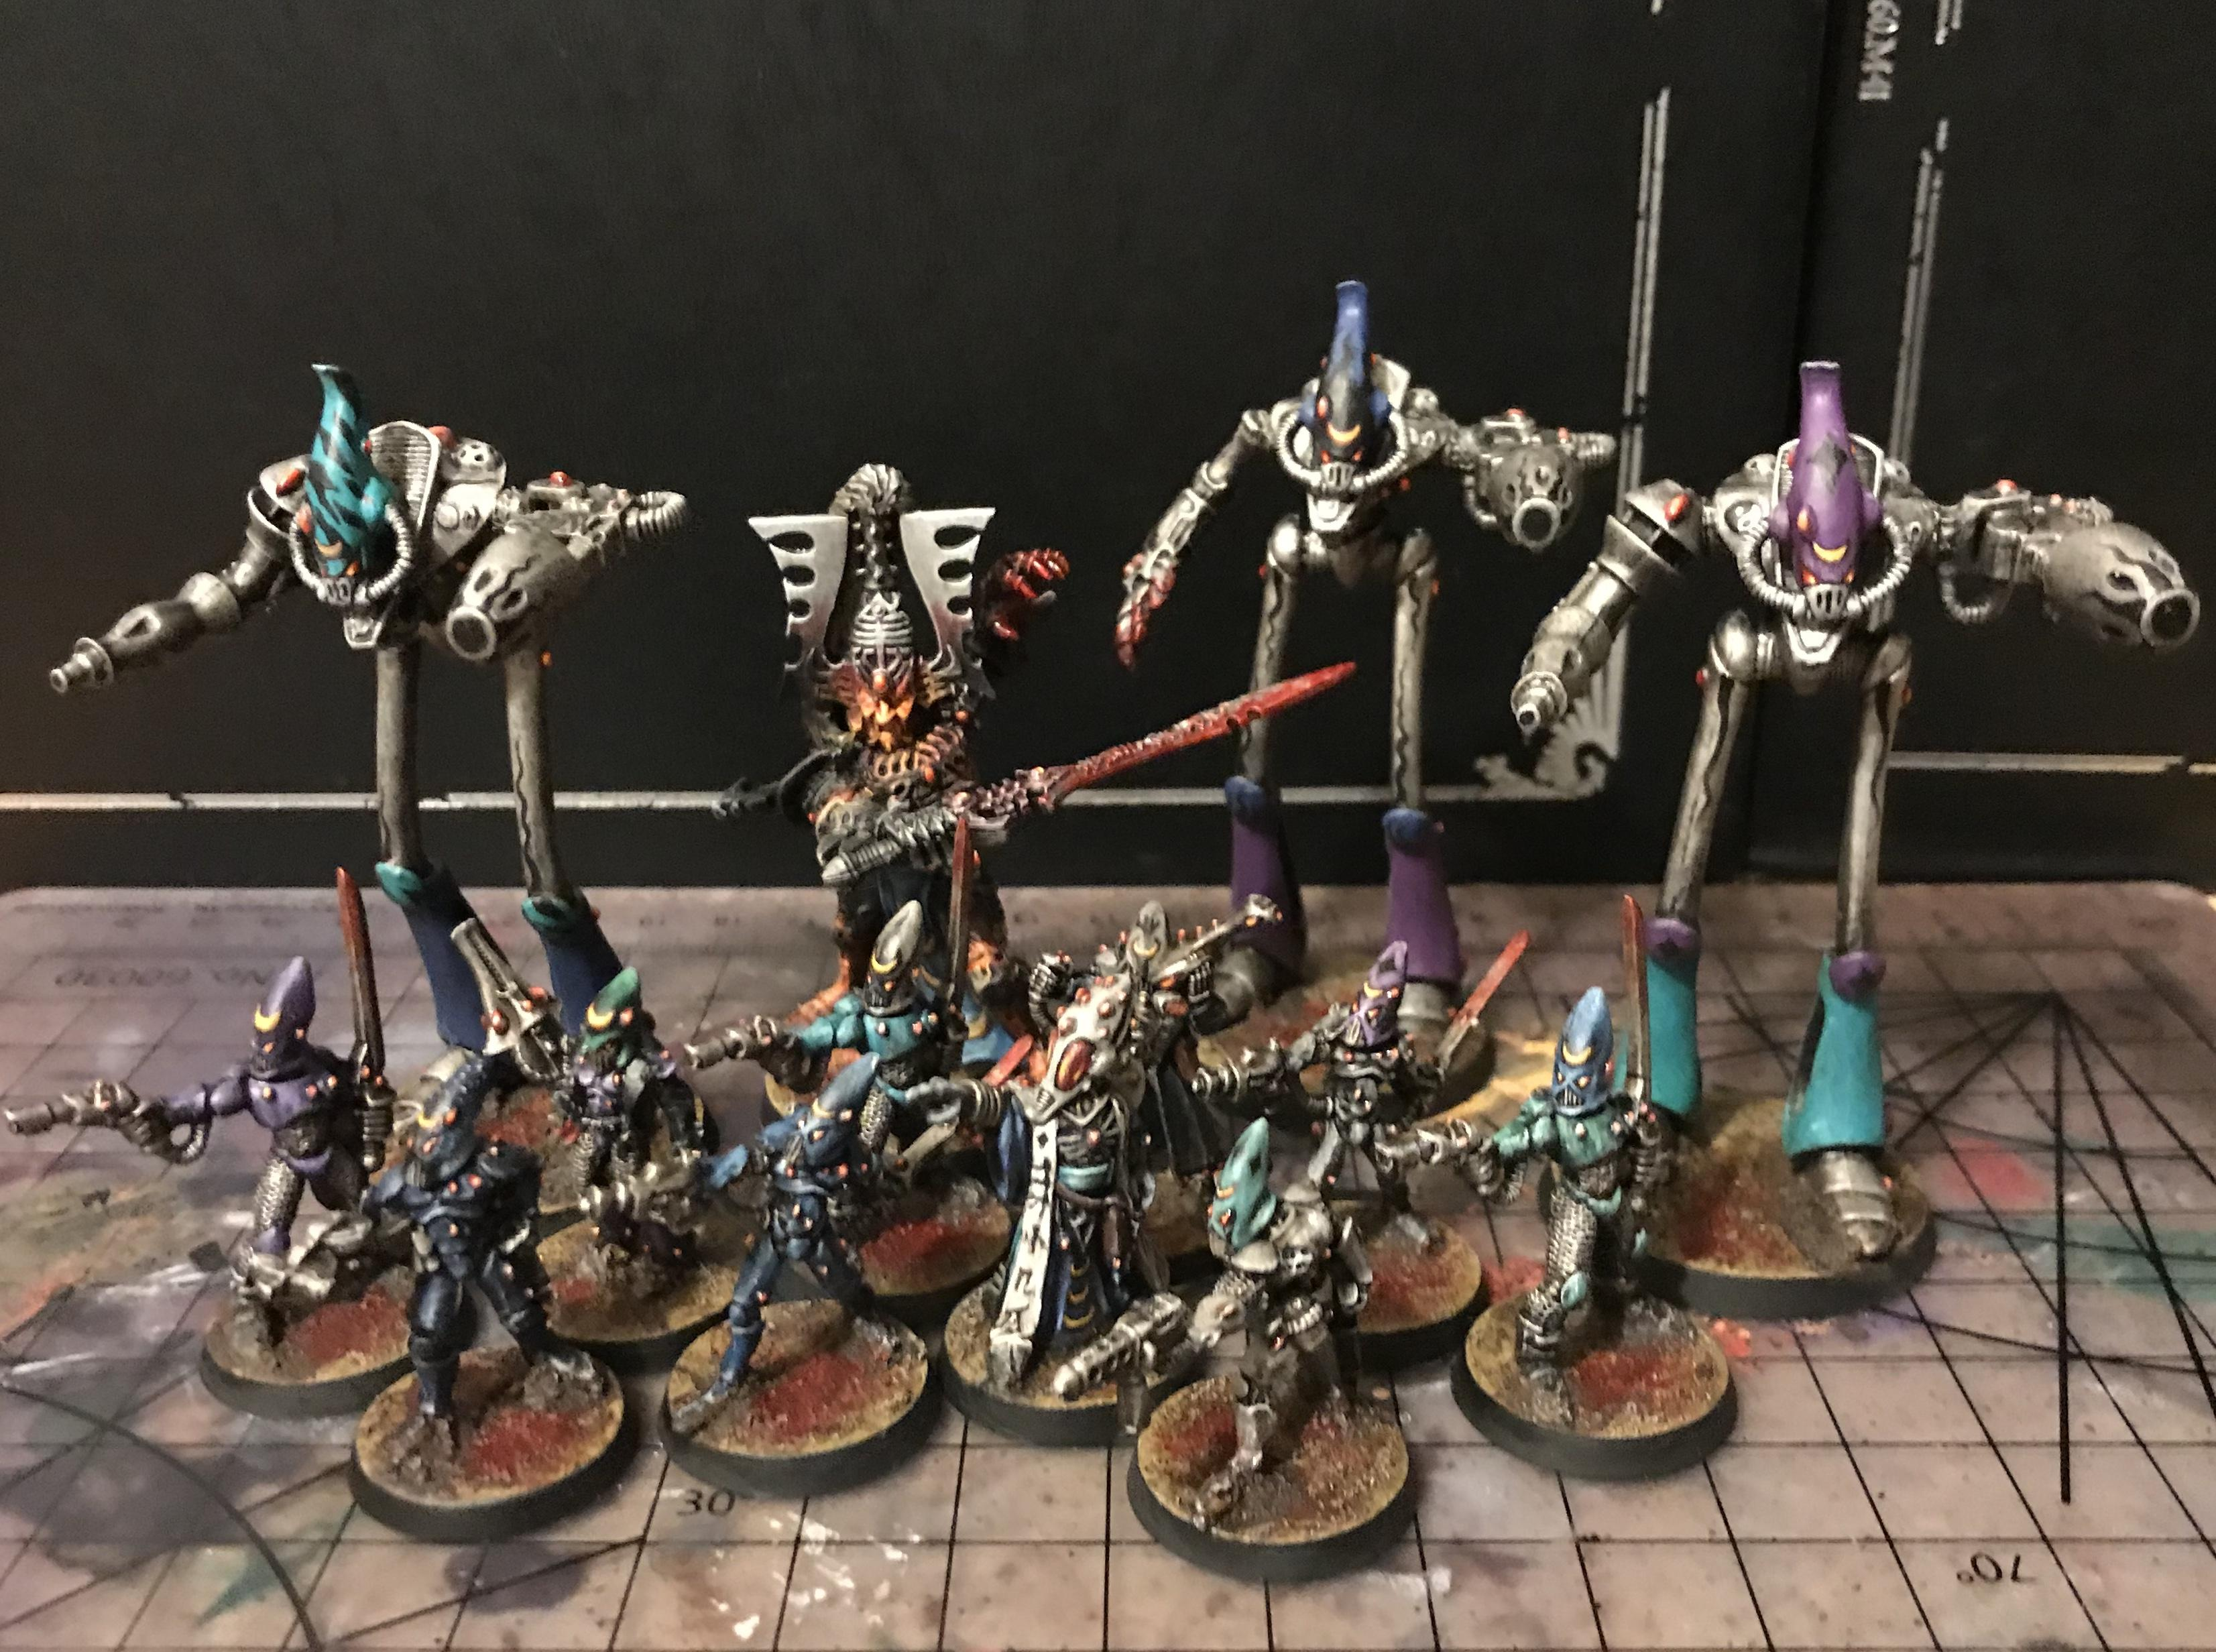 Adventurers, Aeldari, Aelf, Aelves, Alaitoc, Armor, Battle, Bloody, Bone, Catapult, Class, Construct, Constructions, Corsairs, Craftworld, Craftworlders, Dark, Doom, Dreadnought, Dreamer, Drukhari, Eldar, Elves, Evil, Fair, Farseer, Folk, God, Guardians, Gun, Handed, Khaine, Laser, Mage, Magic, Mercenary, Mesh, Moon, Murder, Of, Outcast, Outcasts, Pirate, Pirates, Power, Psionic, Psychic, Psyker, Psykers, Raider, Raiders, Rangers, Reaver, Reavers, Rogue, Rogue Trader, Saphery, Seer, Shuriken, Space, Spirit, Trader, Vampire, Void, Wailing, War, Warhammer 40,000, Warhammer Fantasy, Warlock, Warriors, Witch, Witchblade, Wraith, Wraithbone, Wraithlord, Wraithlords